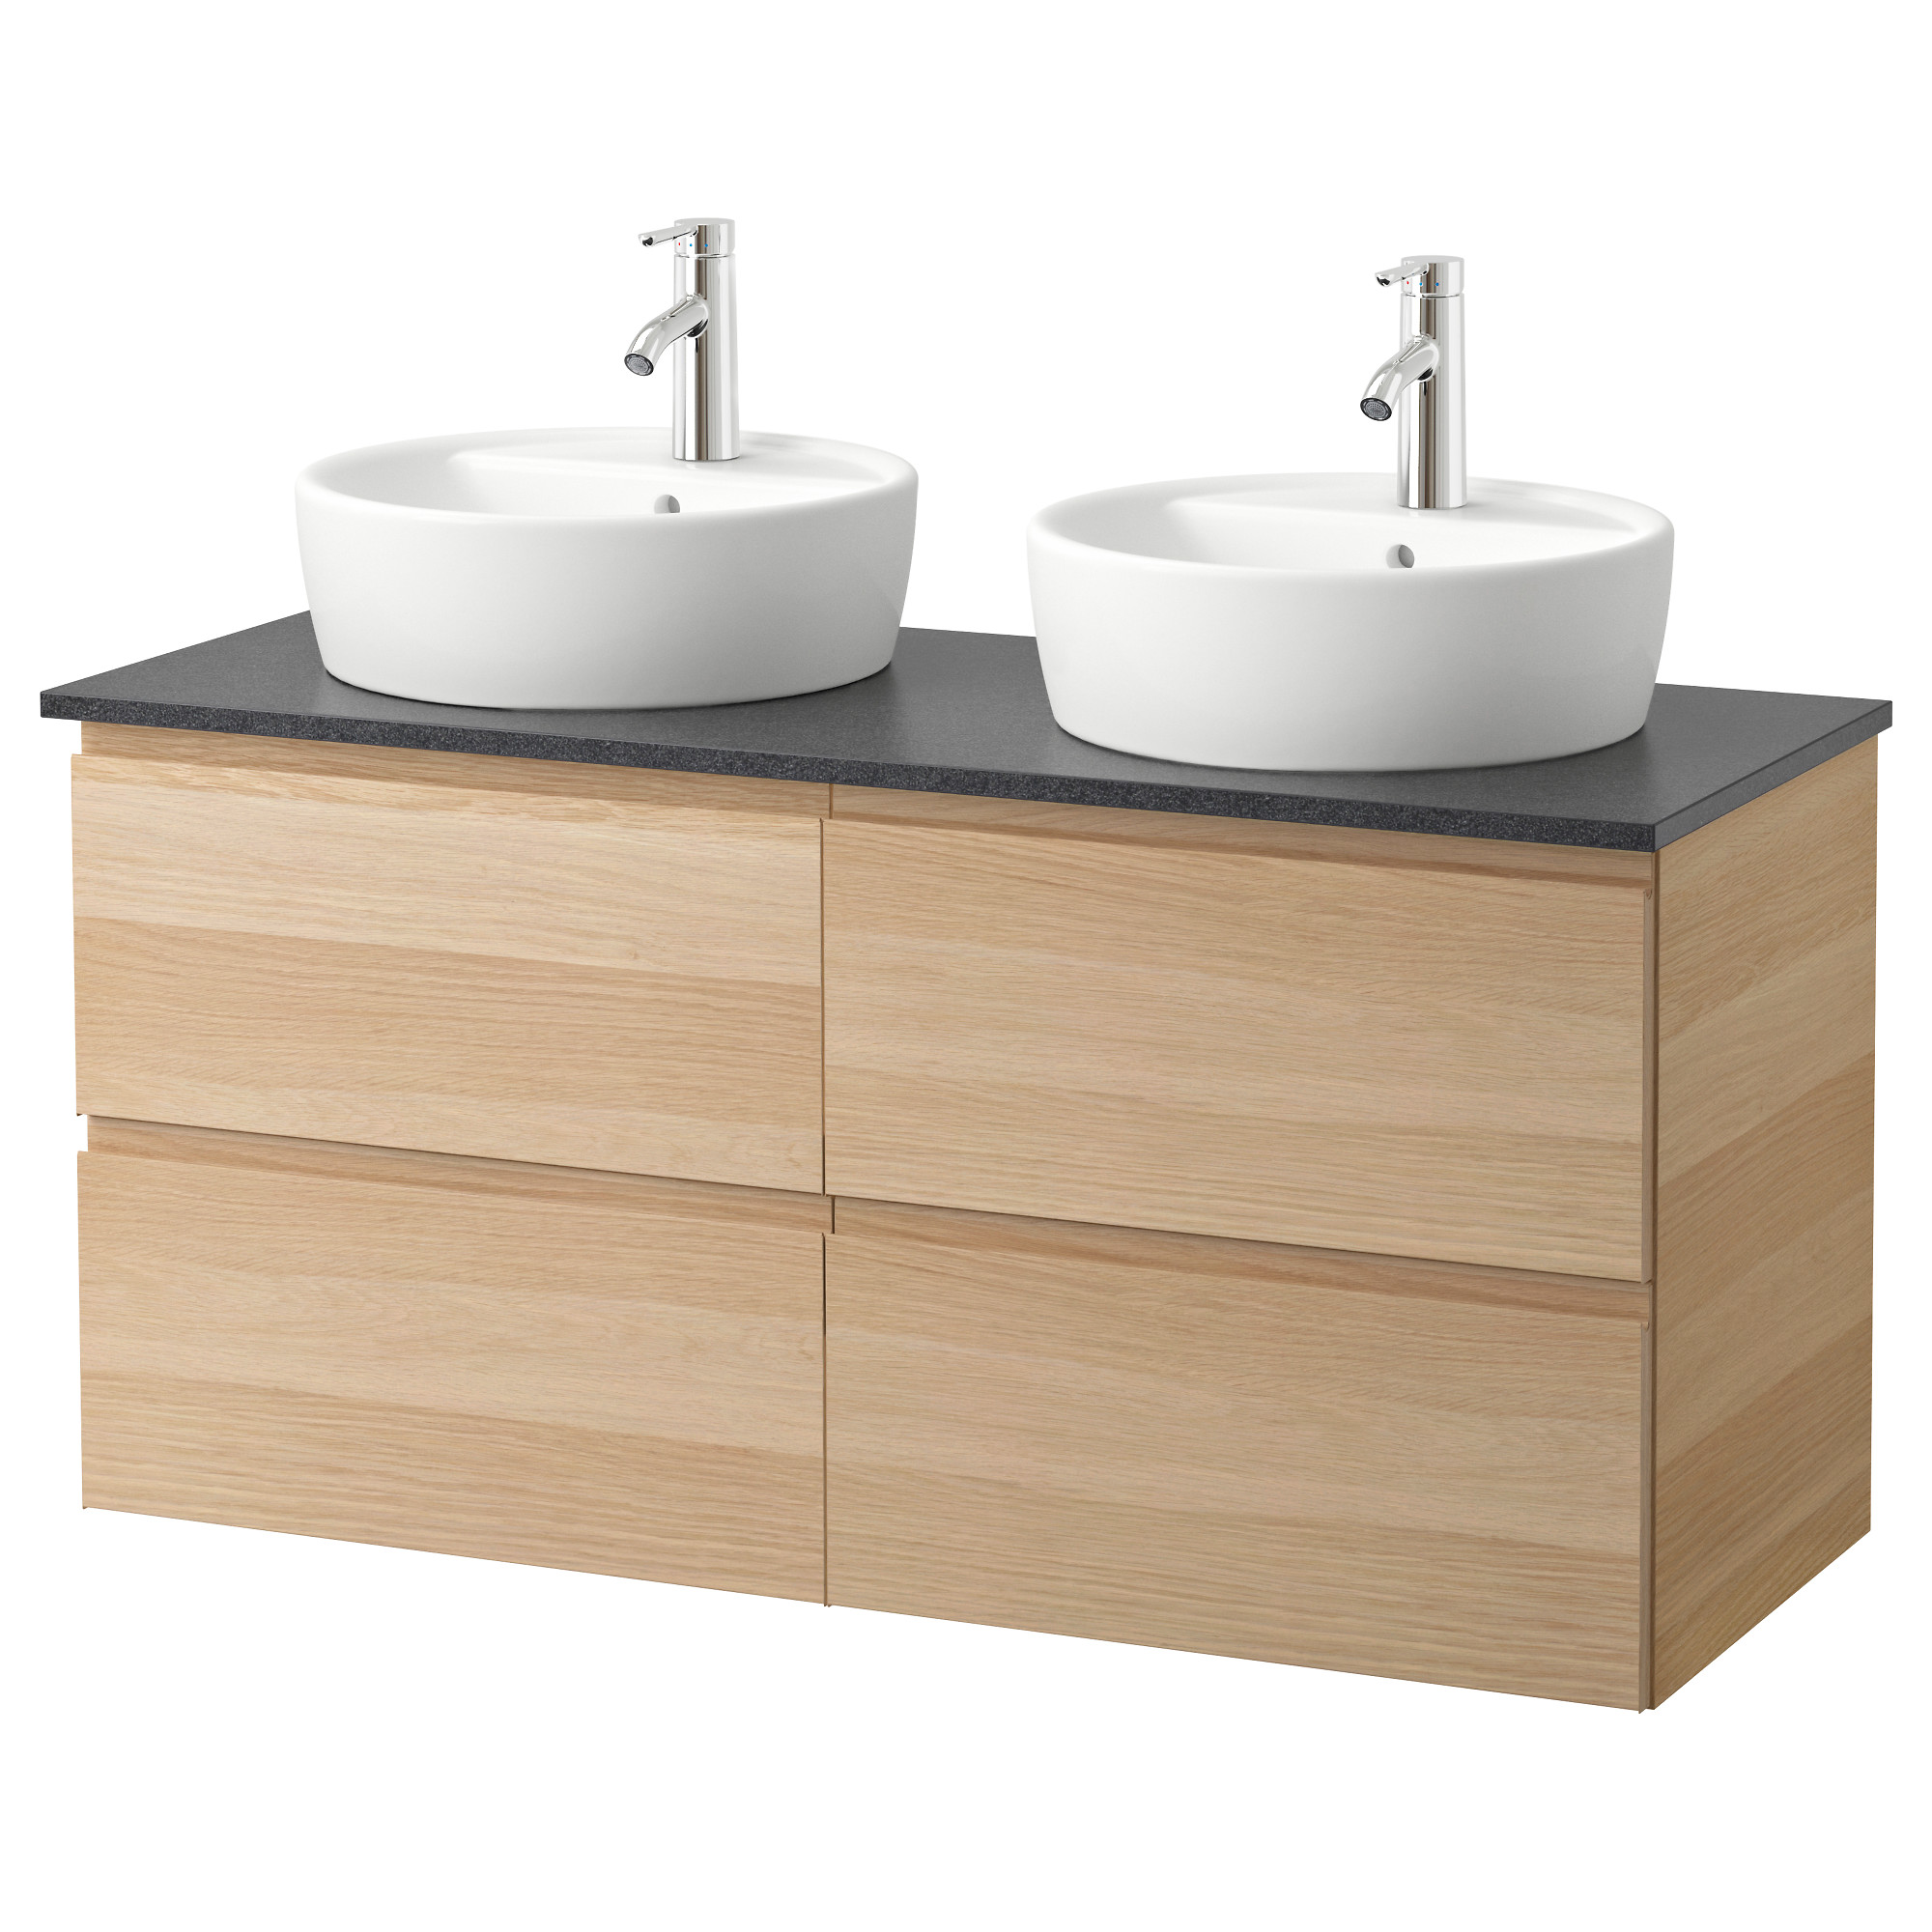 Double Vasque Salle De Bain Dimension